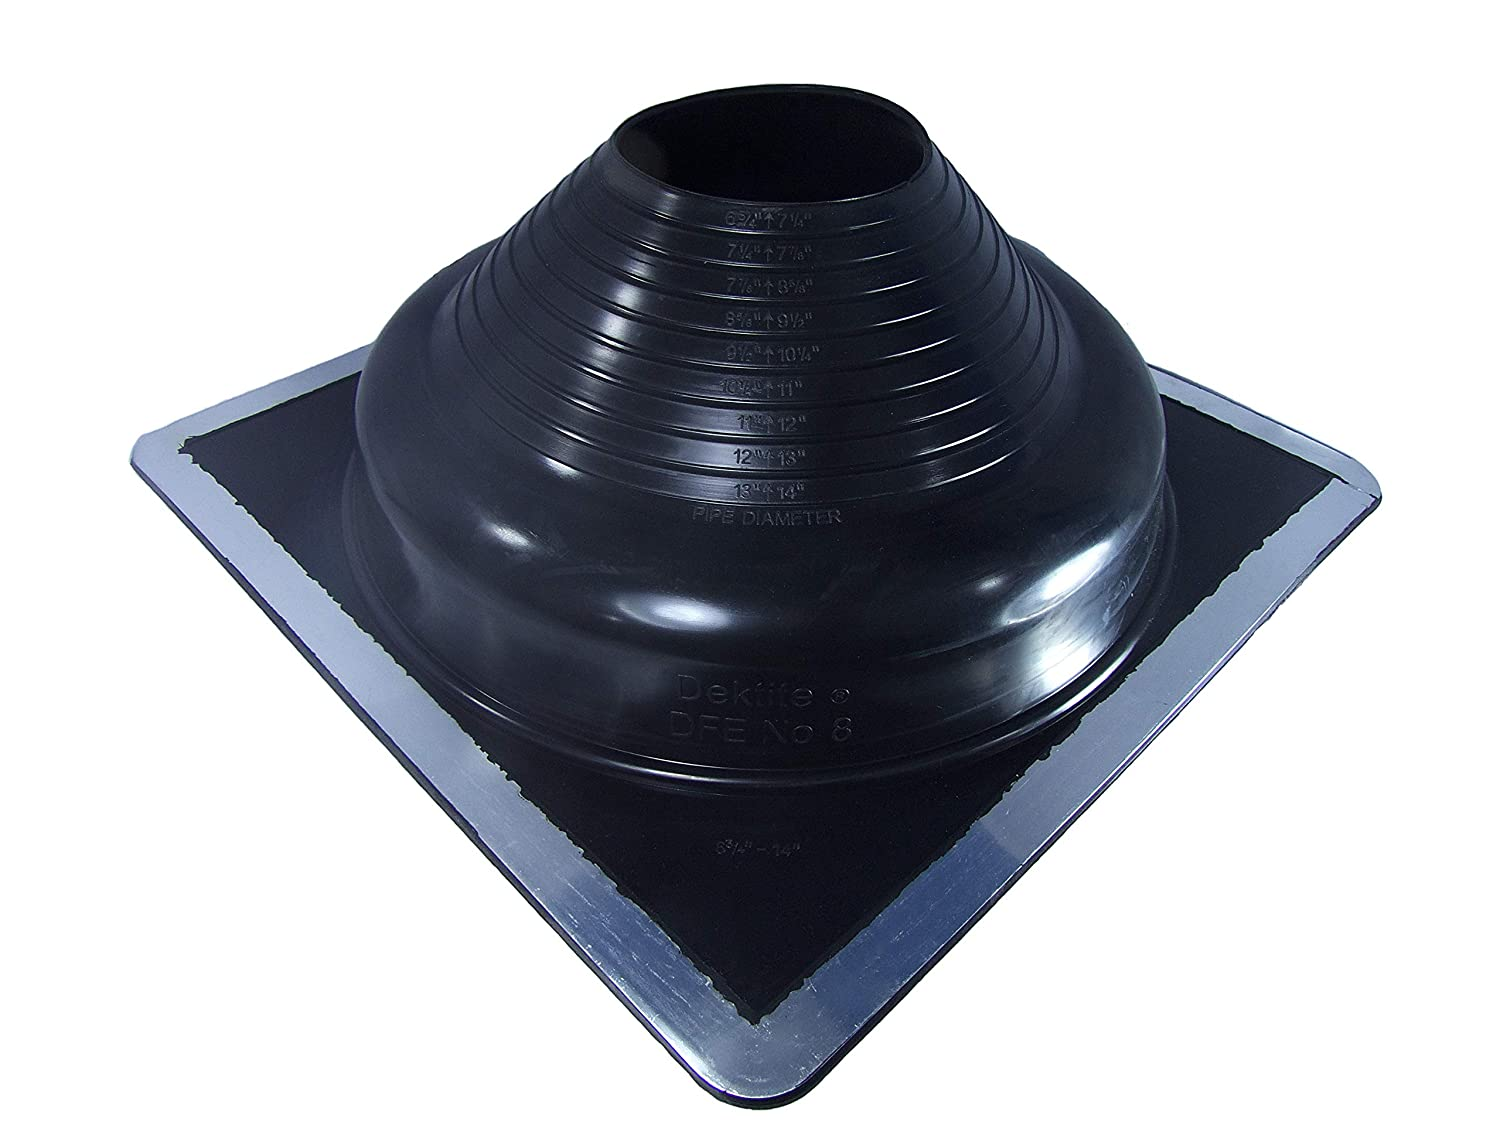 DEKTITE SQUARE PIPE FLASHING BOOT: #5 Black EPDM Pipe Flashing Dektite (OD pipe size 4ʺ to 8ʺ) ~ Roof Jack Pipe Boot is on-site adjustable ~ pipe flashing attaches easily with roofing screws ~ By Deks Dektite